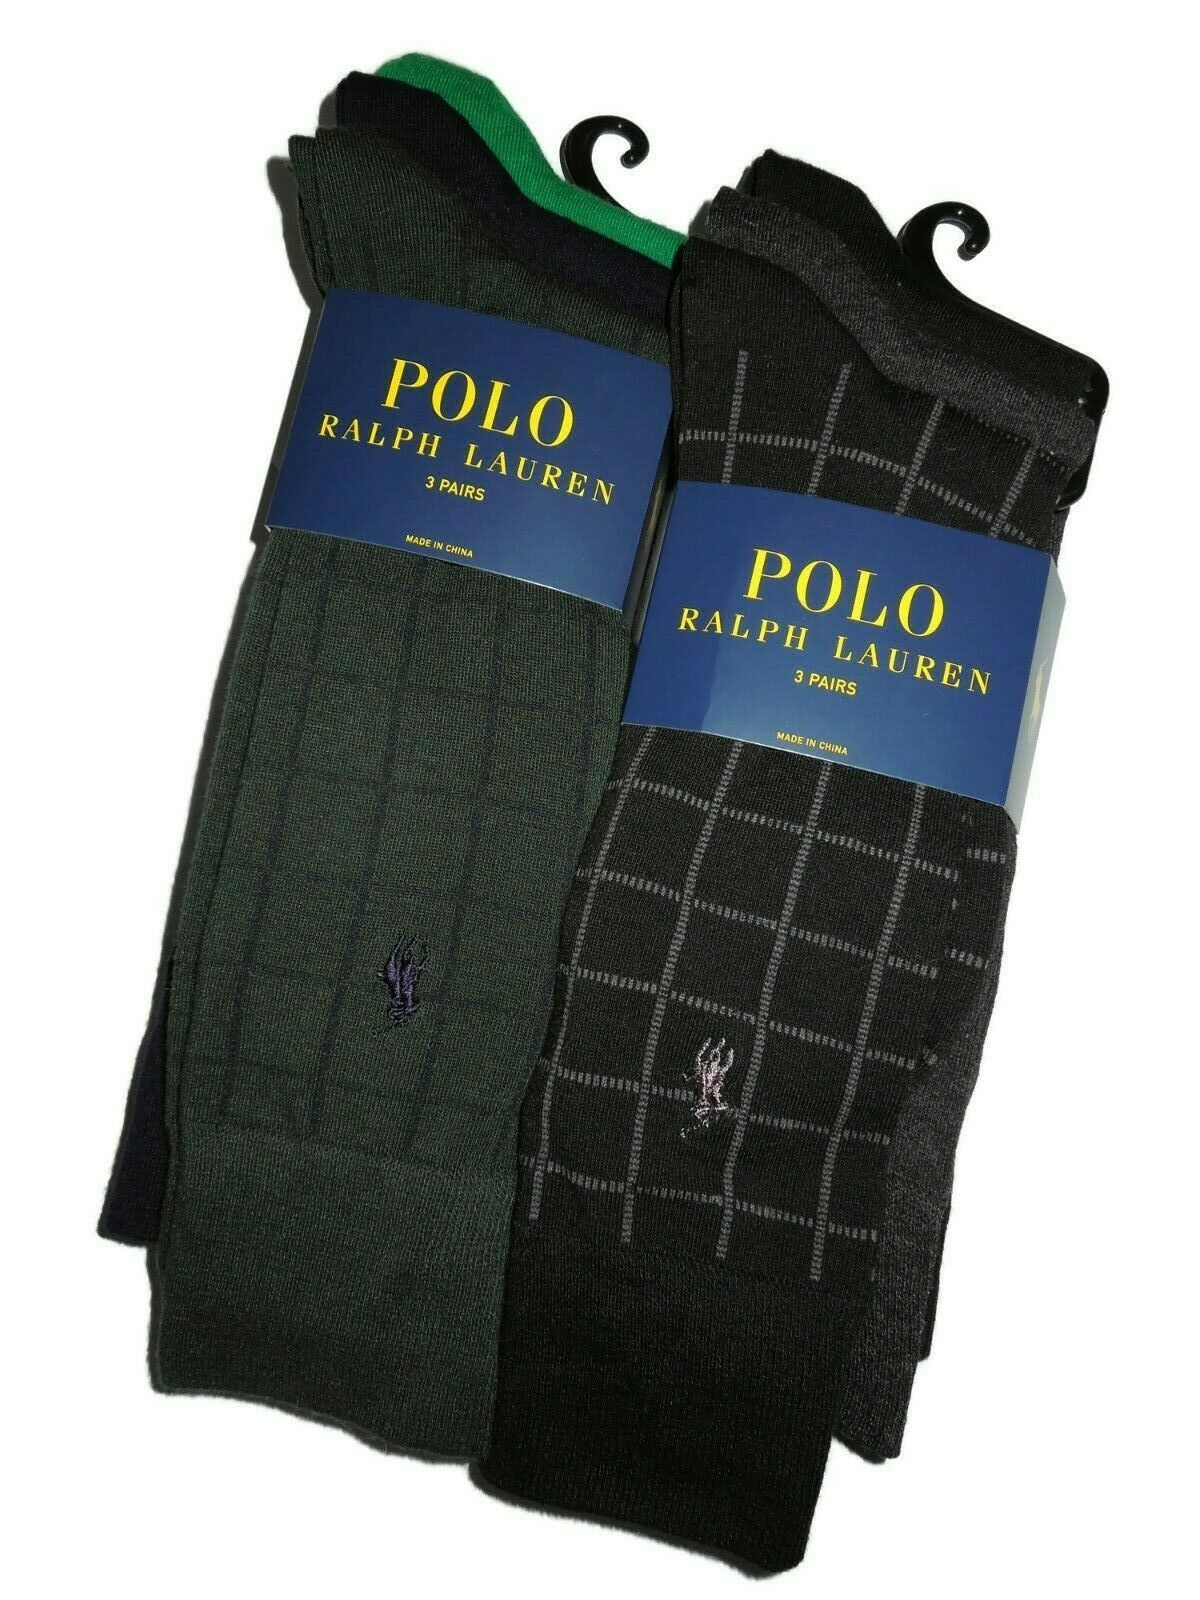 Primary image for .Polo Ralph Lauren mens 6 pair of dress Socks grey black Green Navy Plaid Solid